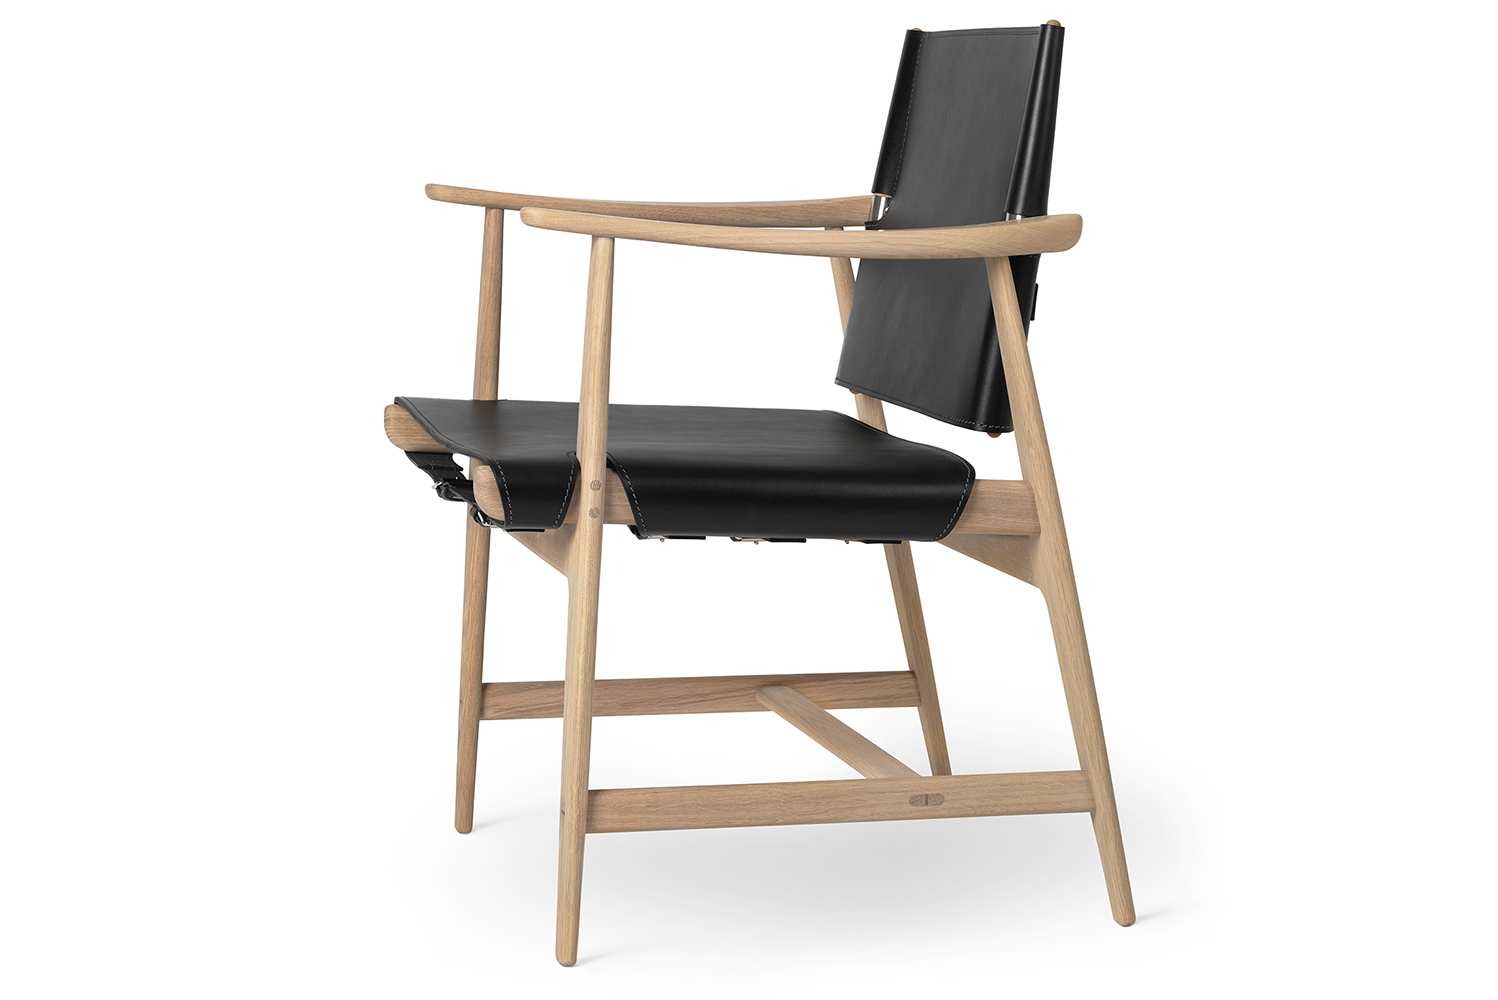 The dimensions of the chair are: 42.5 cm (seat height), 84 cm (height), 62 cm (depth) and 67 cm (width).